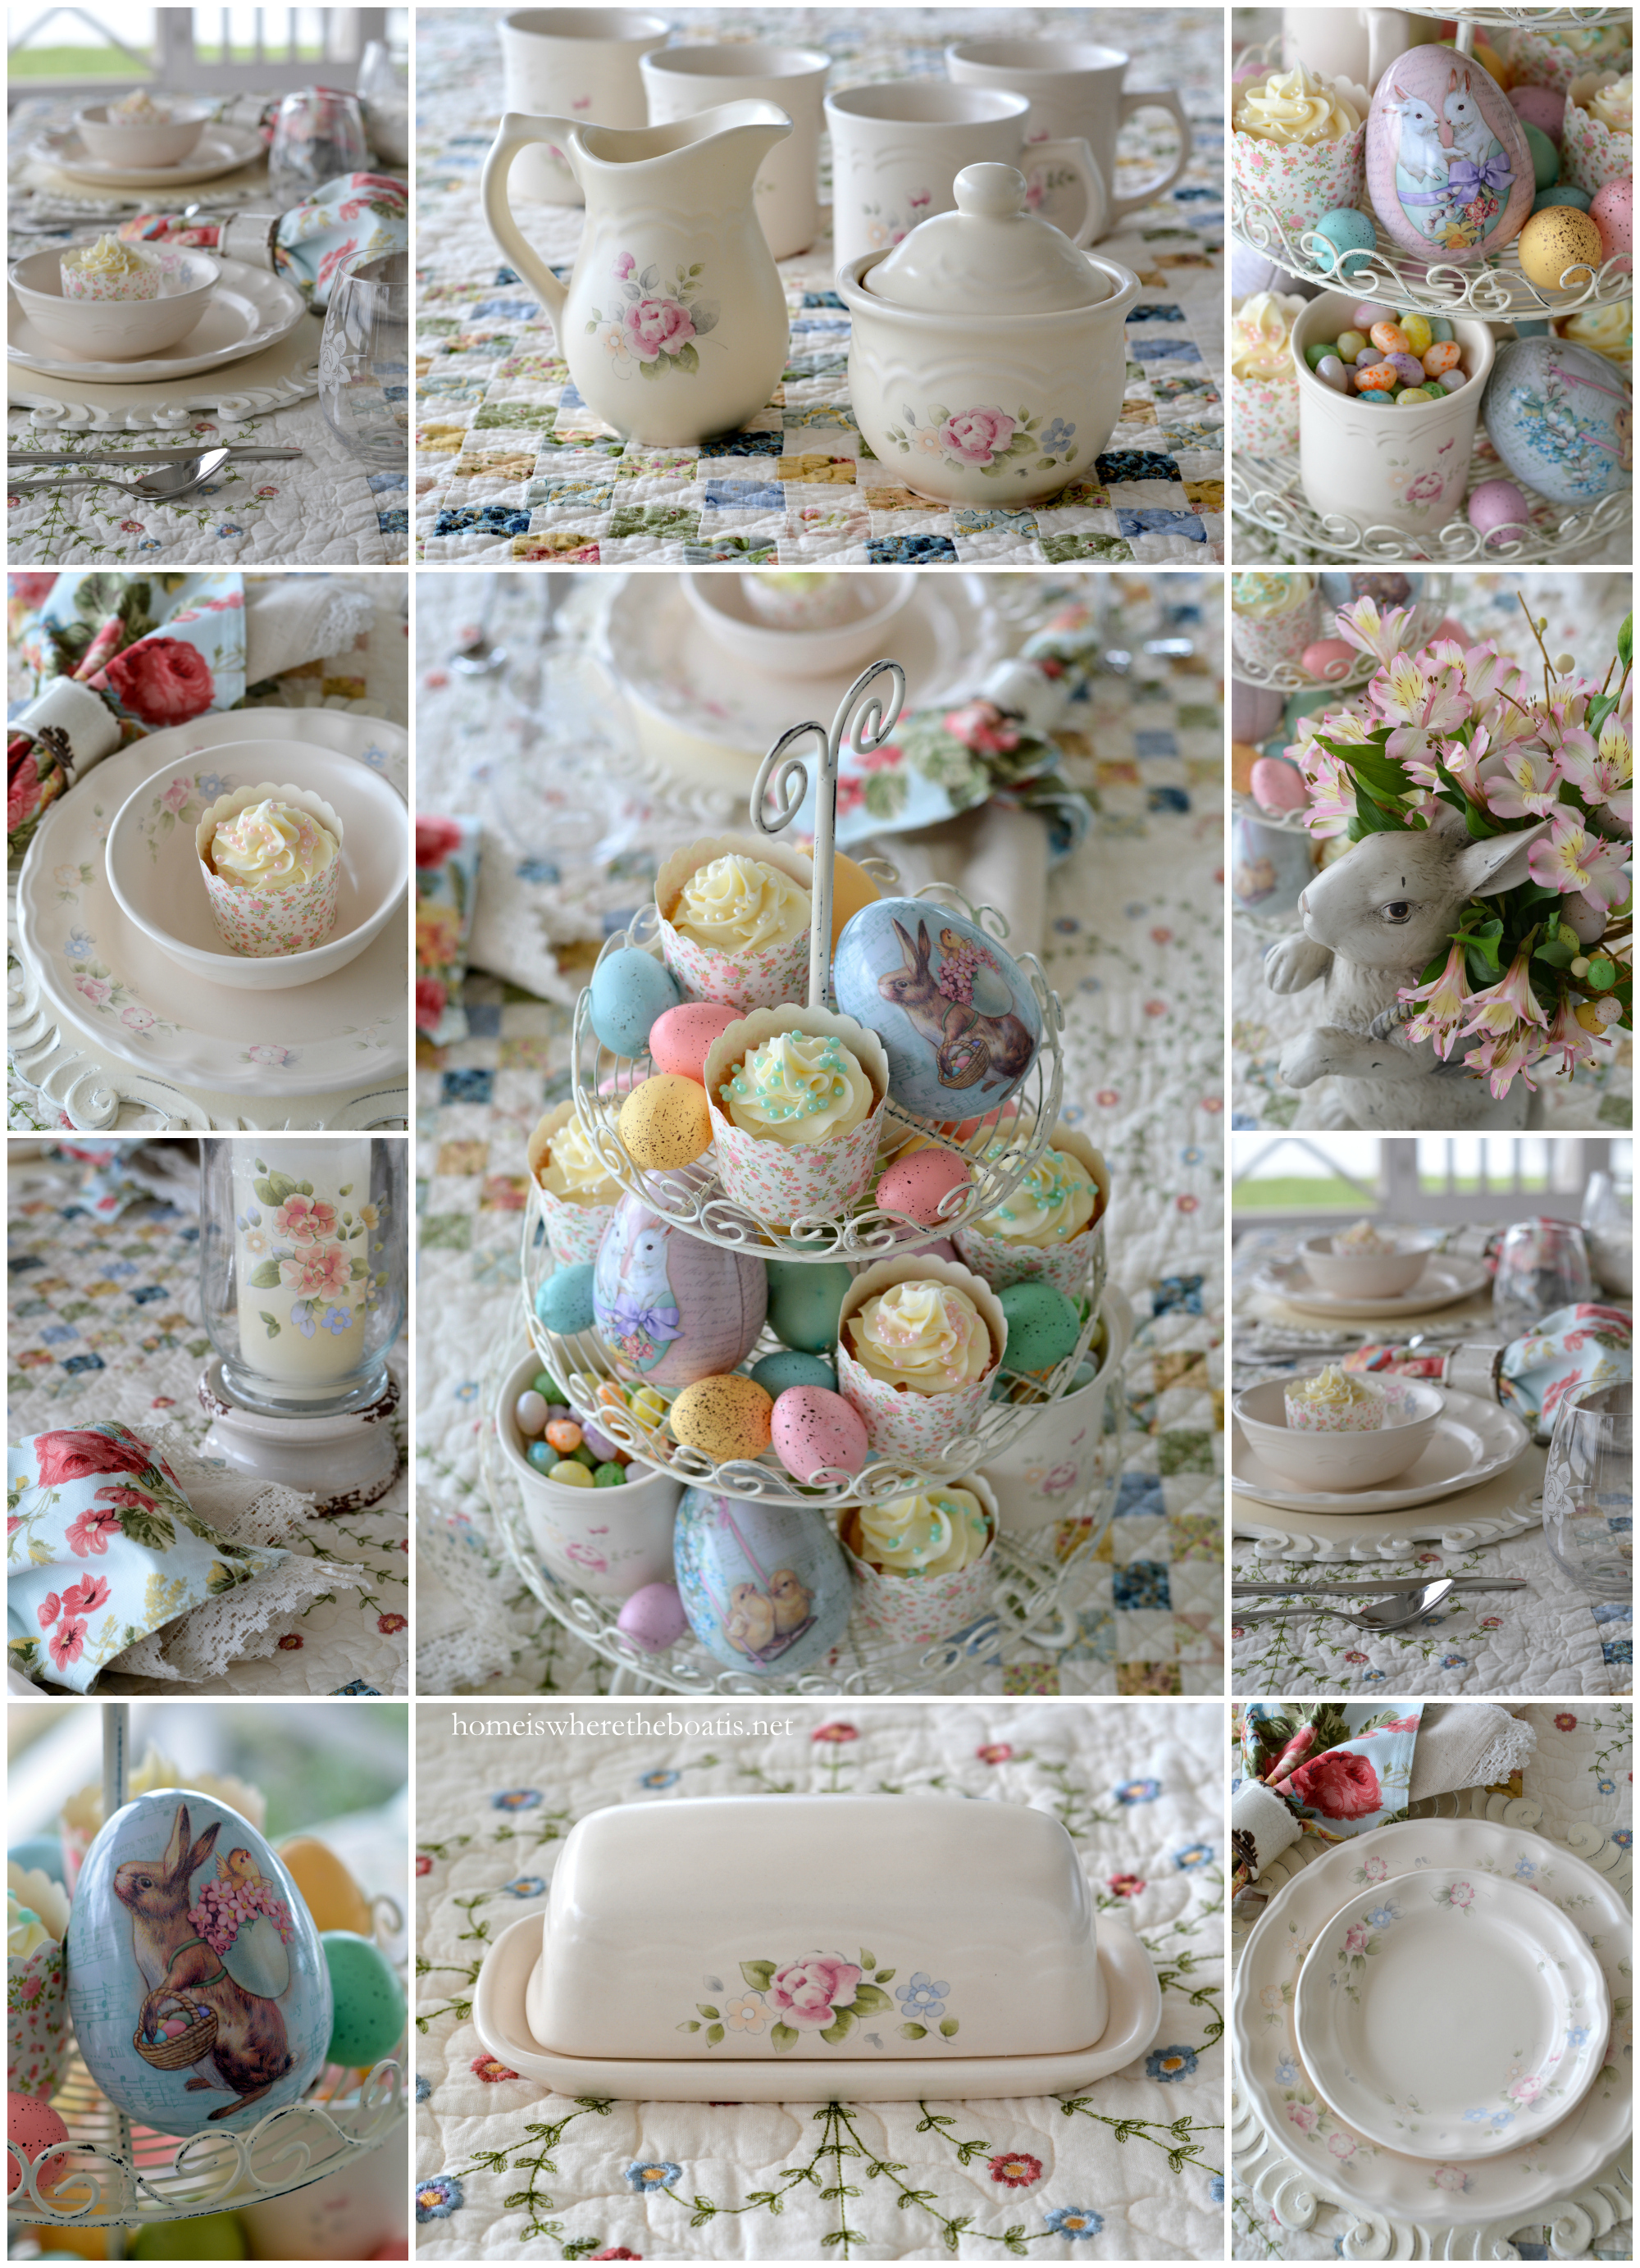 Easter Table and Pfaltzgraff Tea Rose & At the Table: Roses Bunnies and Pfaltzgraff Tea Rose Dinnerware ...